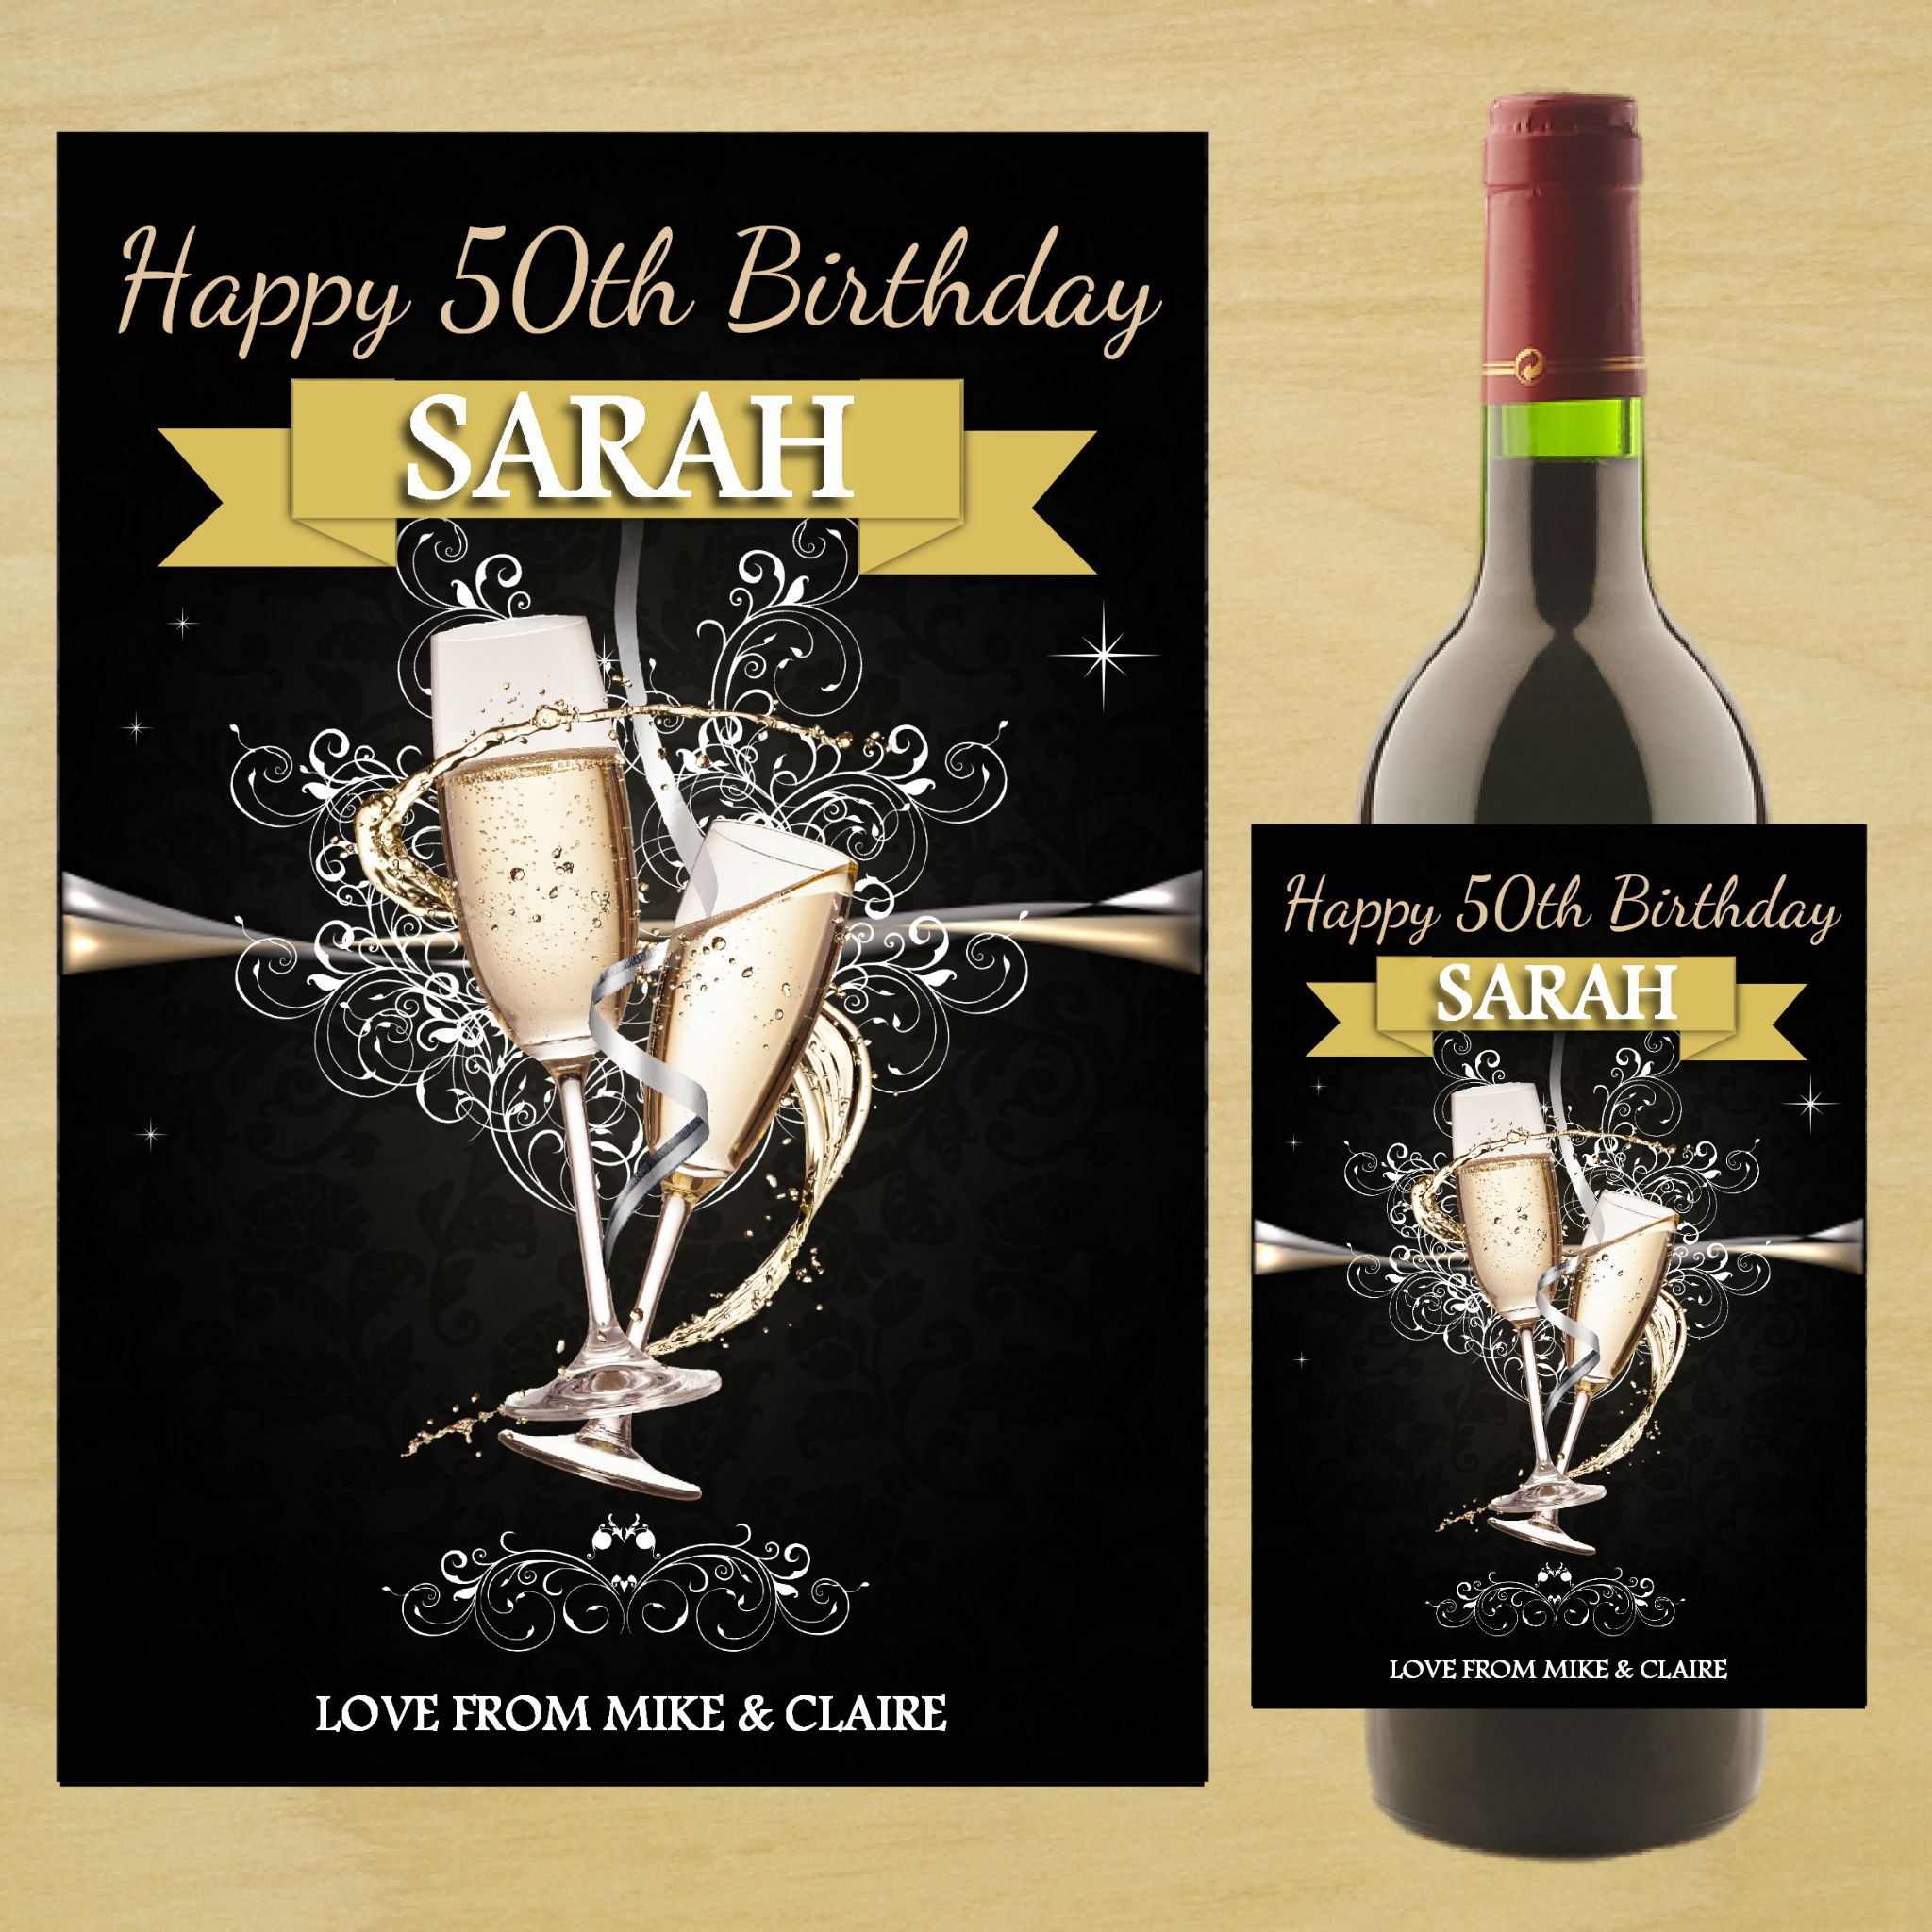 personalised bottle labels birthdays ; personalised-happy-18th-21st-30th-40th-birthday-wine-champagne-bottle-photo-label-n83-any-age-14507-p